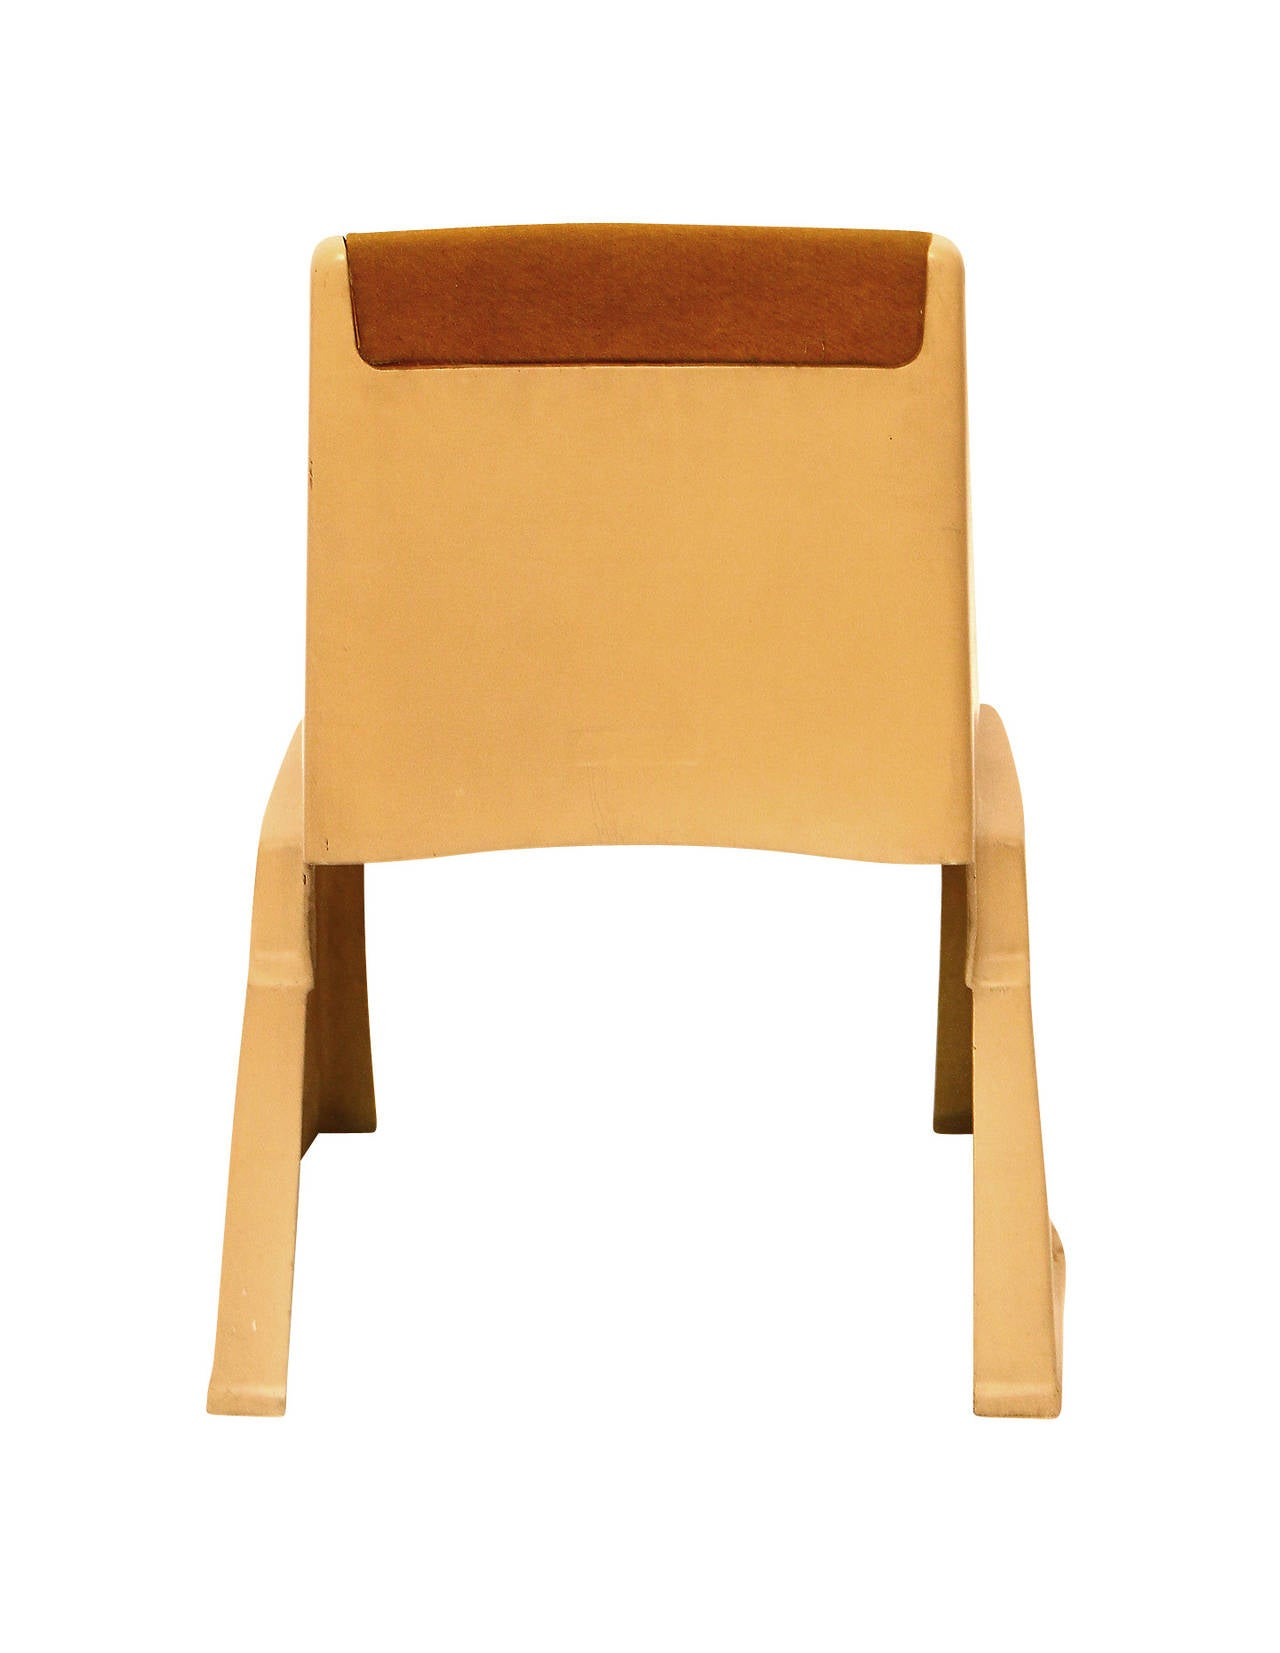 Up to 8 Very Rare Brutalist Austrian Stacking Chairs, 1970s For Sale 1